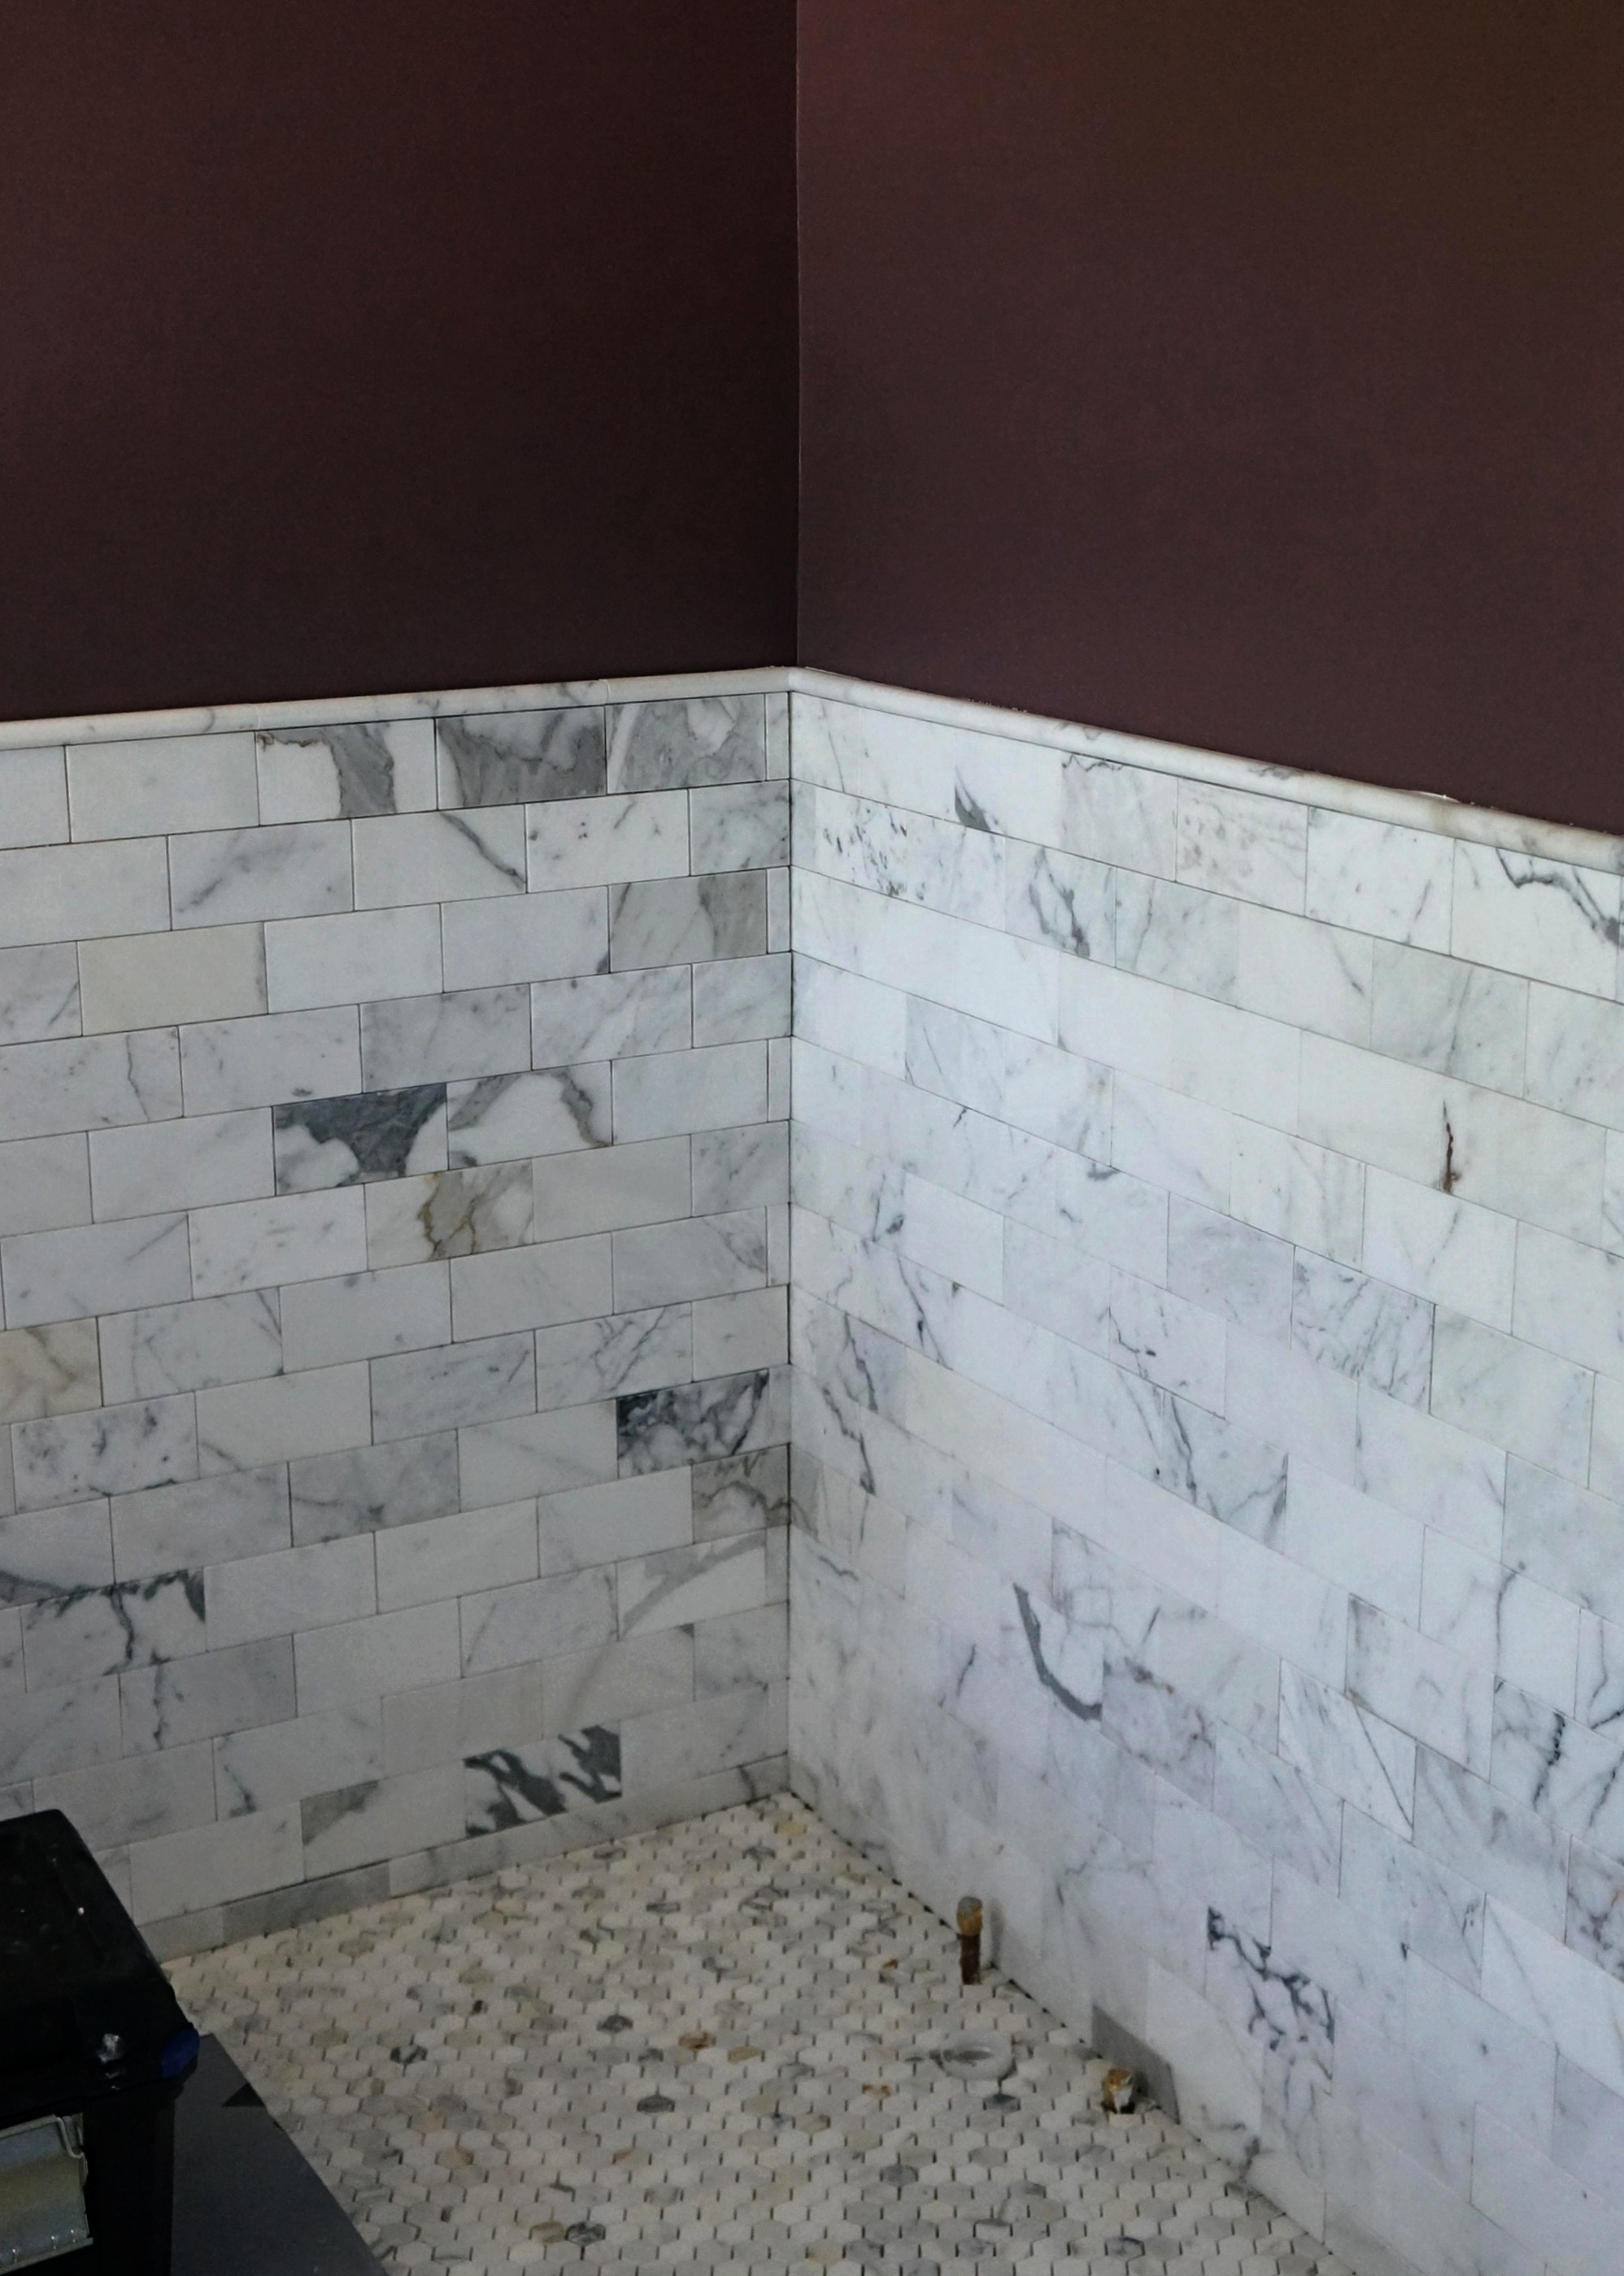 bathtile-melding-old-new-remodel-addition-chester-county.jpg